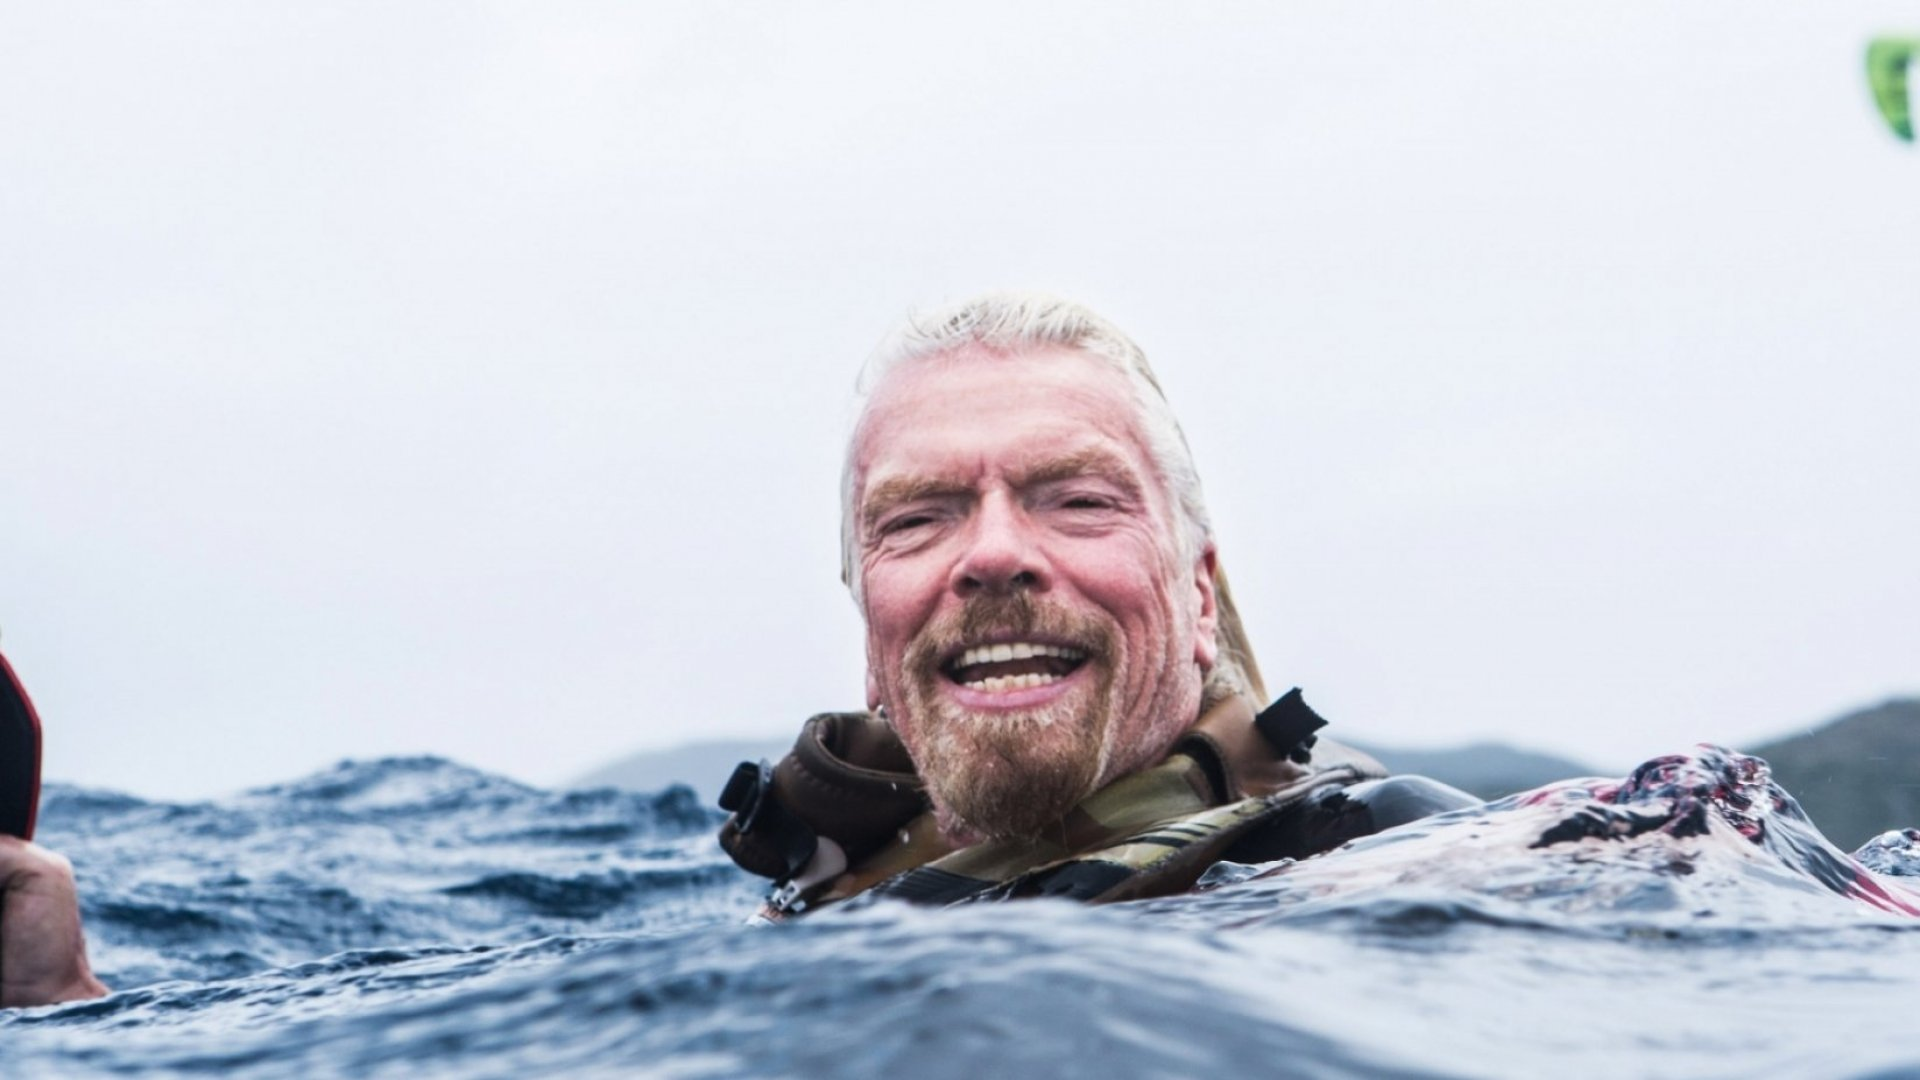 Richard Branson's Secret to Becoming Resilient? Taking on These Outrageously Extreme Hobbies